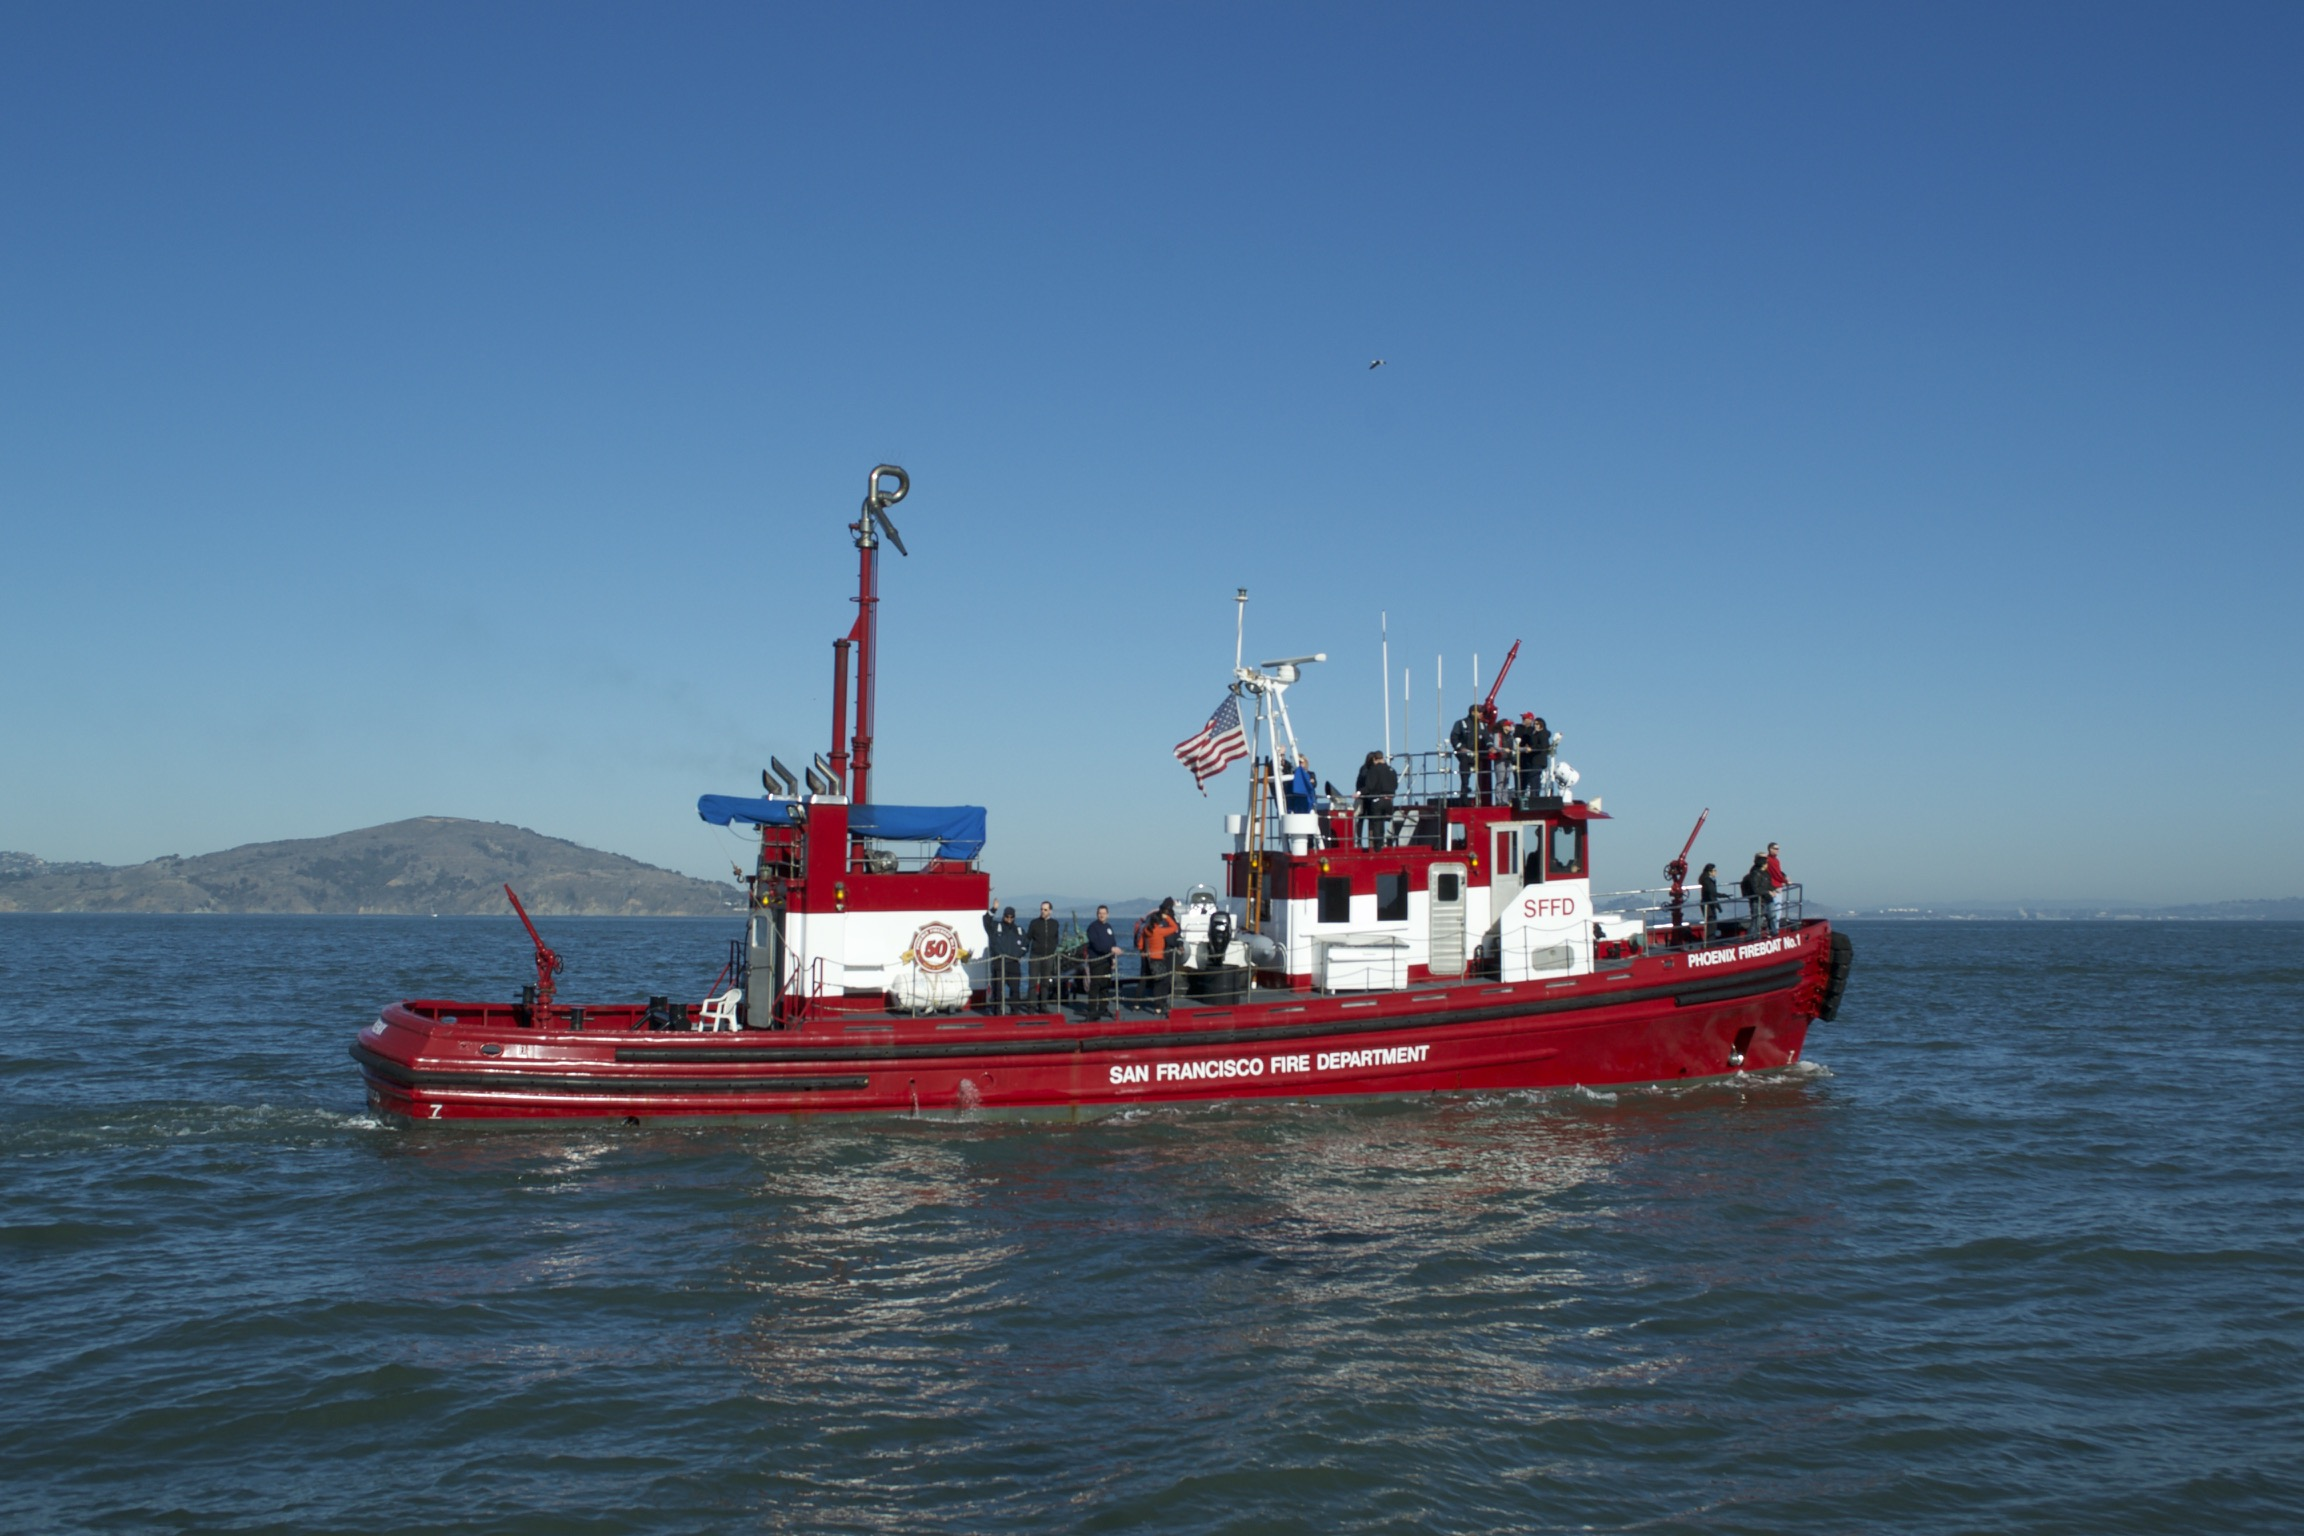 A red San Francisco Fire Department boat.